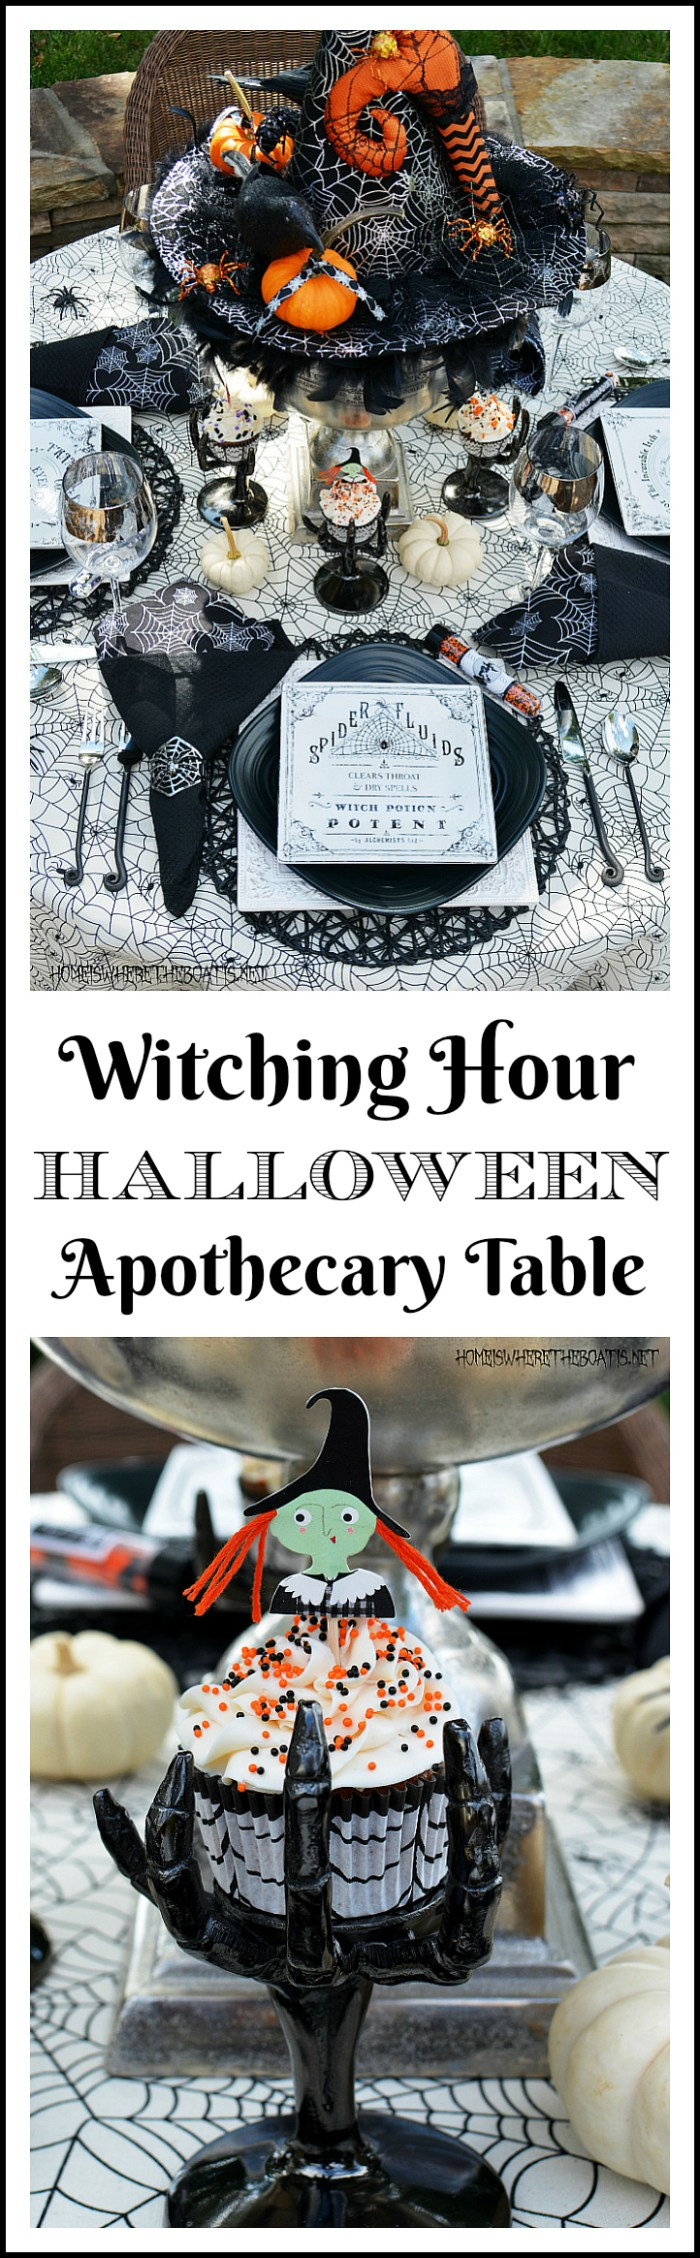 witching-hour-table-collage1